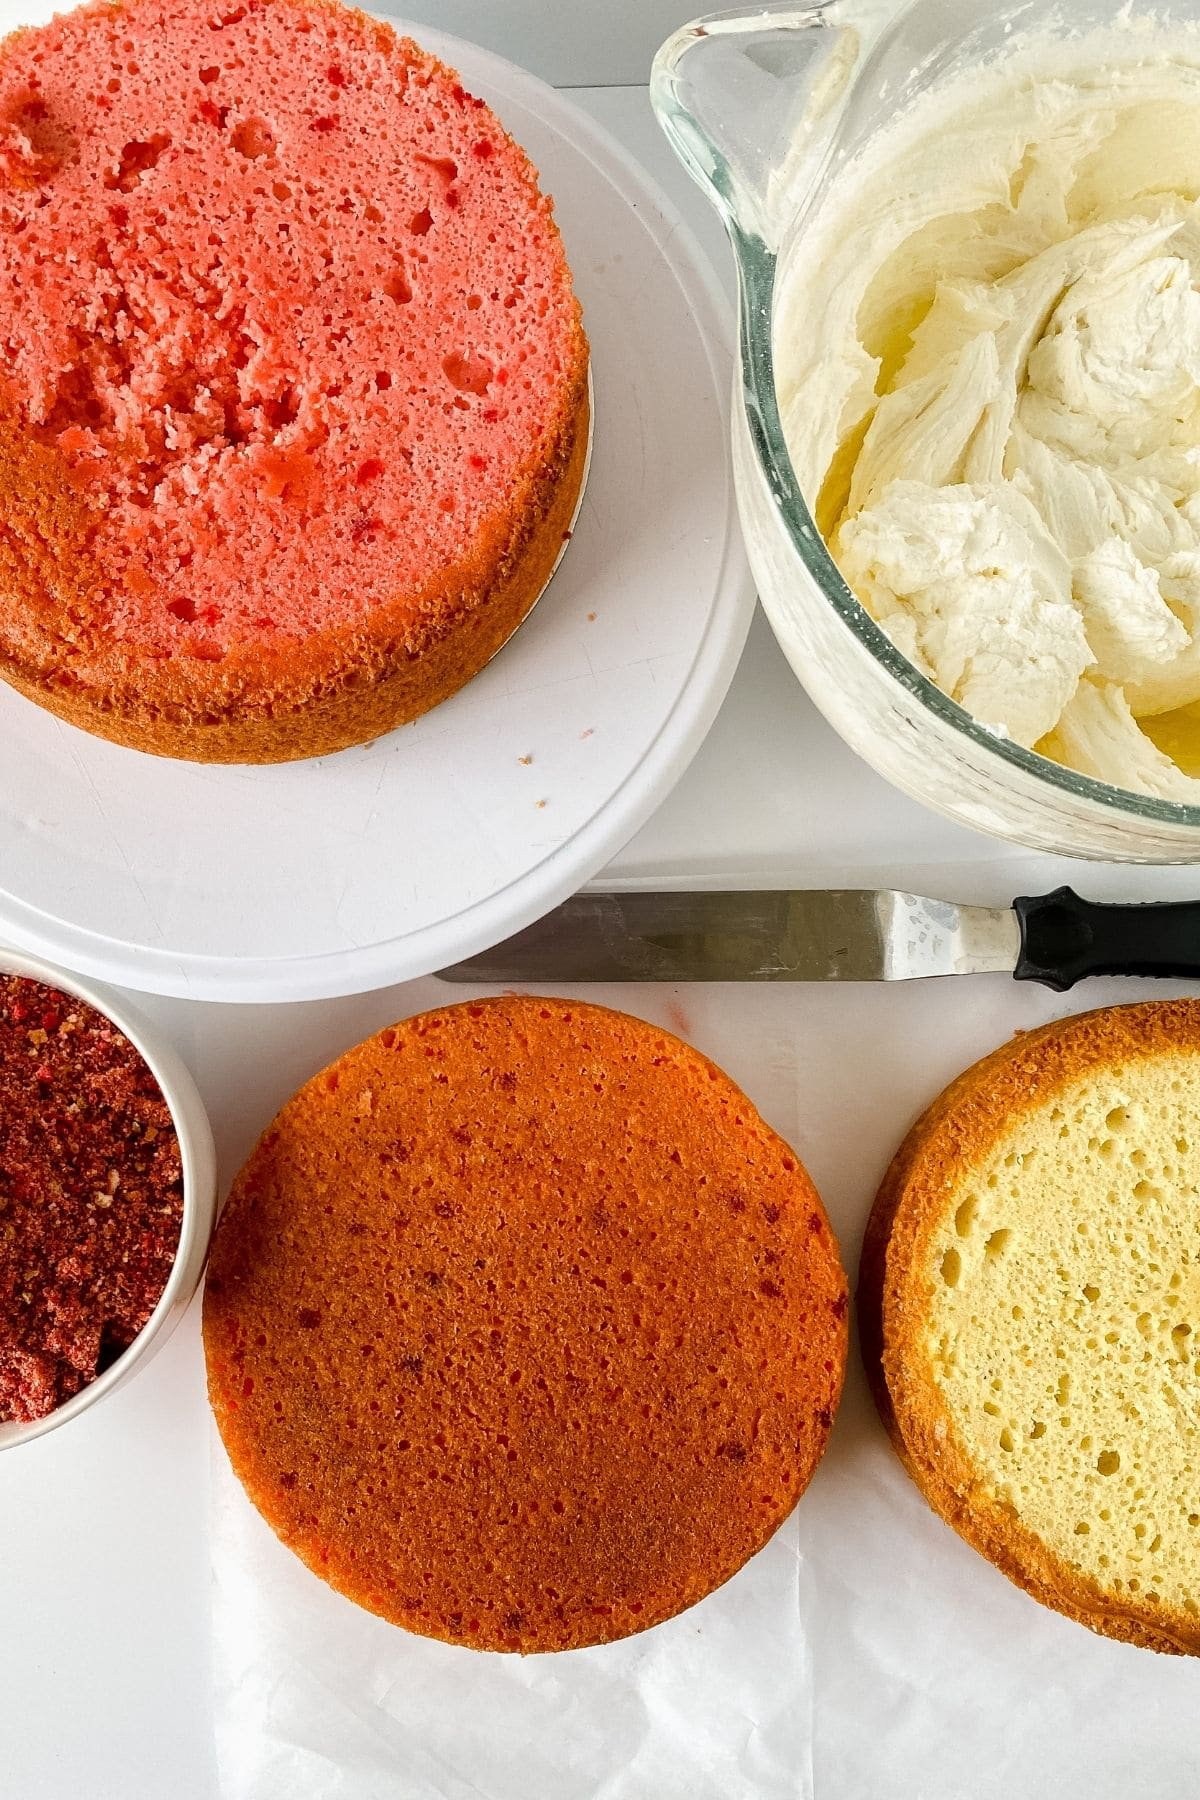 Cakes and frosting lined up to layer on table